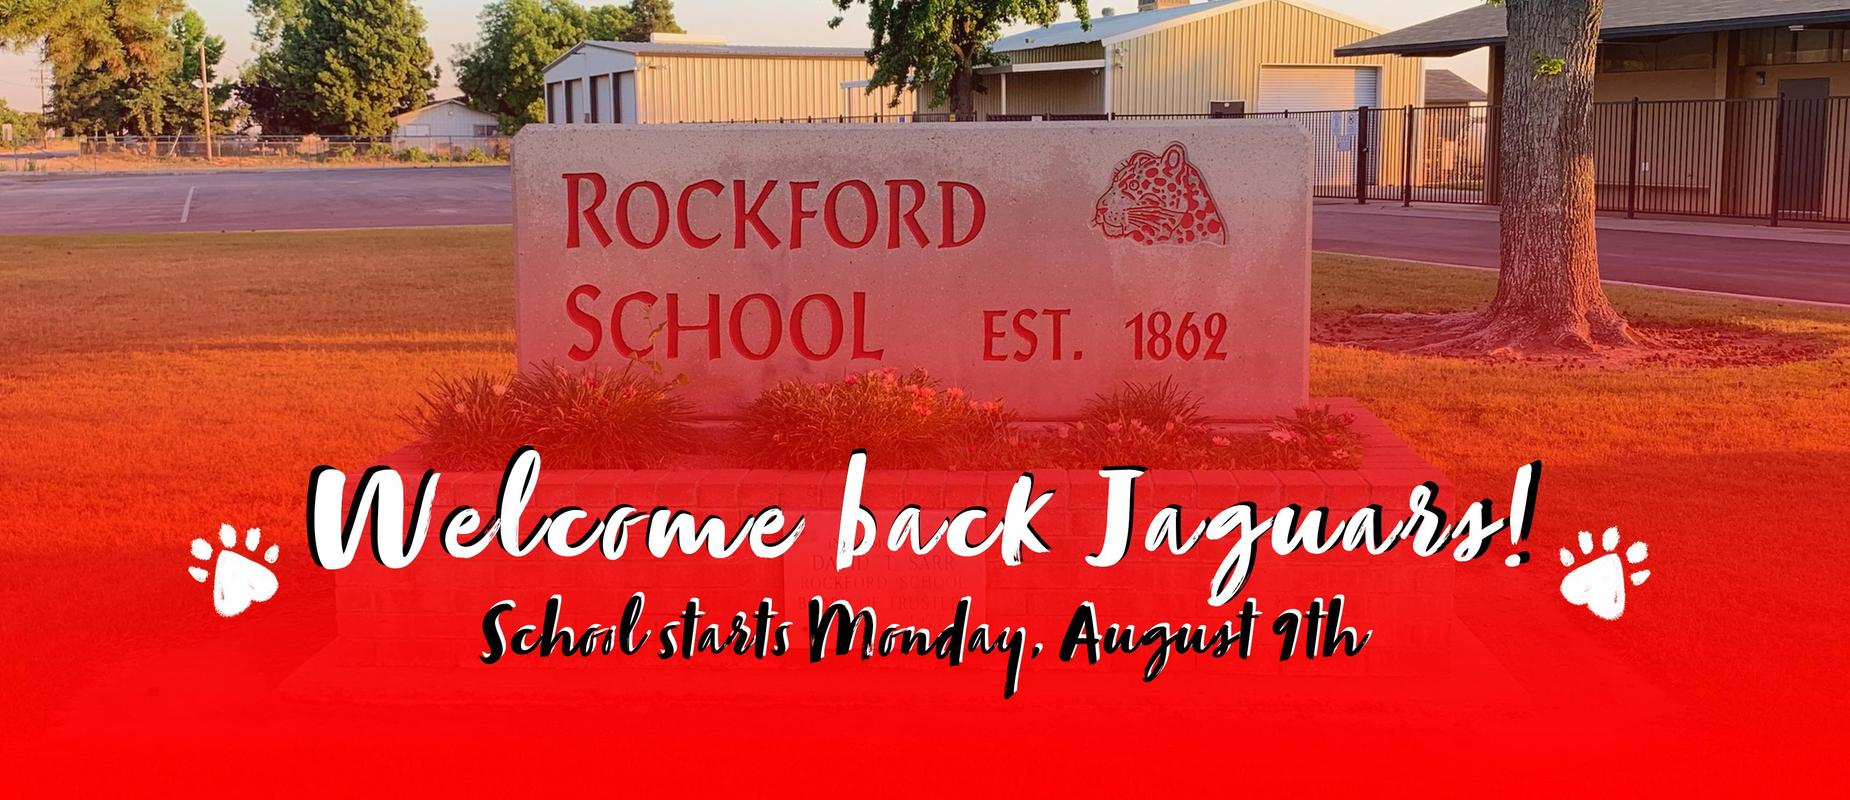 Welcome back Jaguars! School starts Monday, August 9th